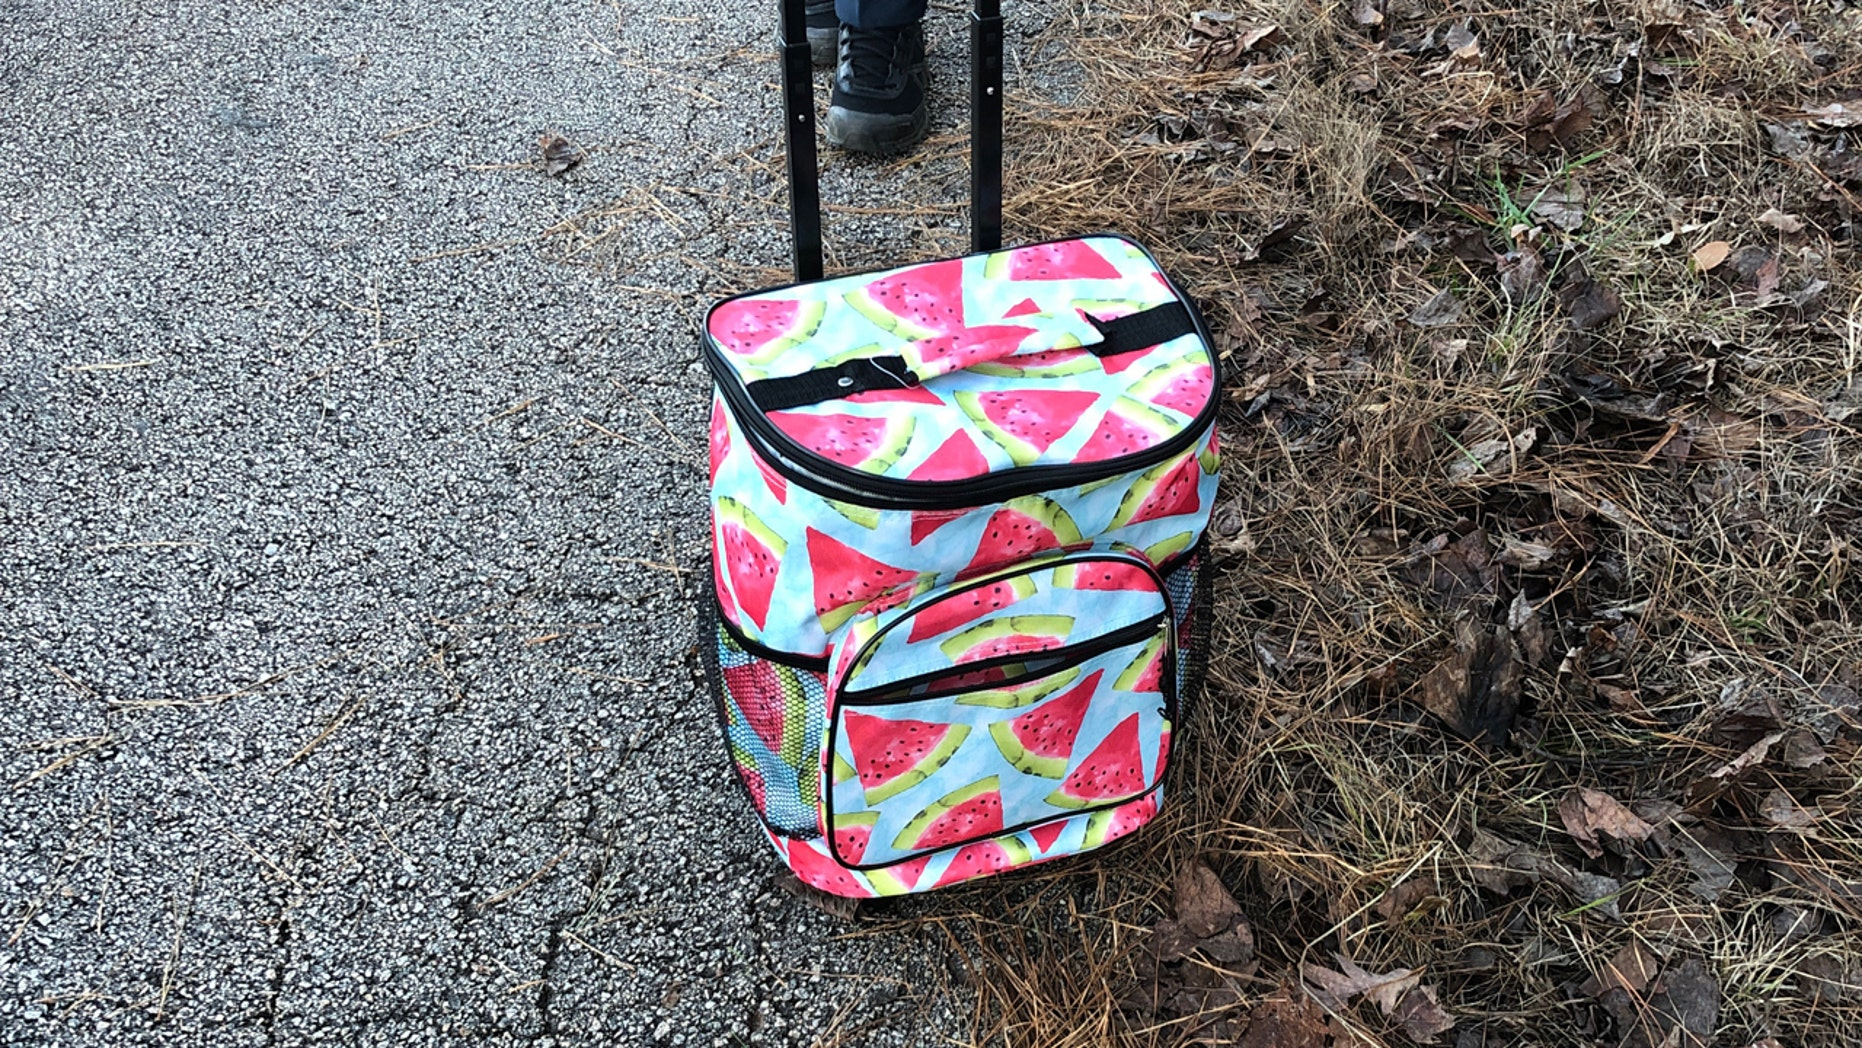 A cooler with the body of a baby was discovered in Troup County, Georgia on Sunday.